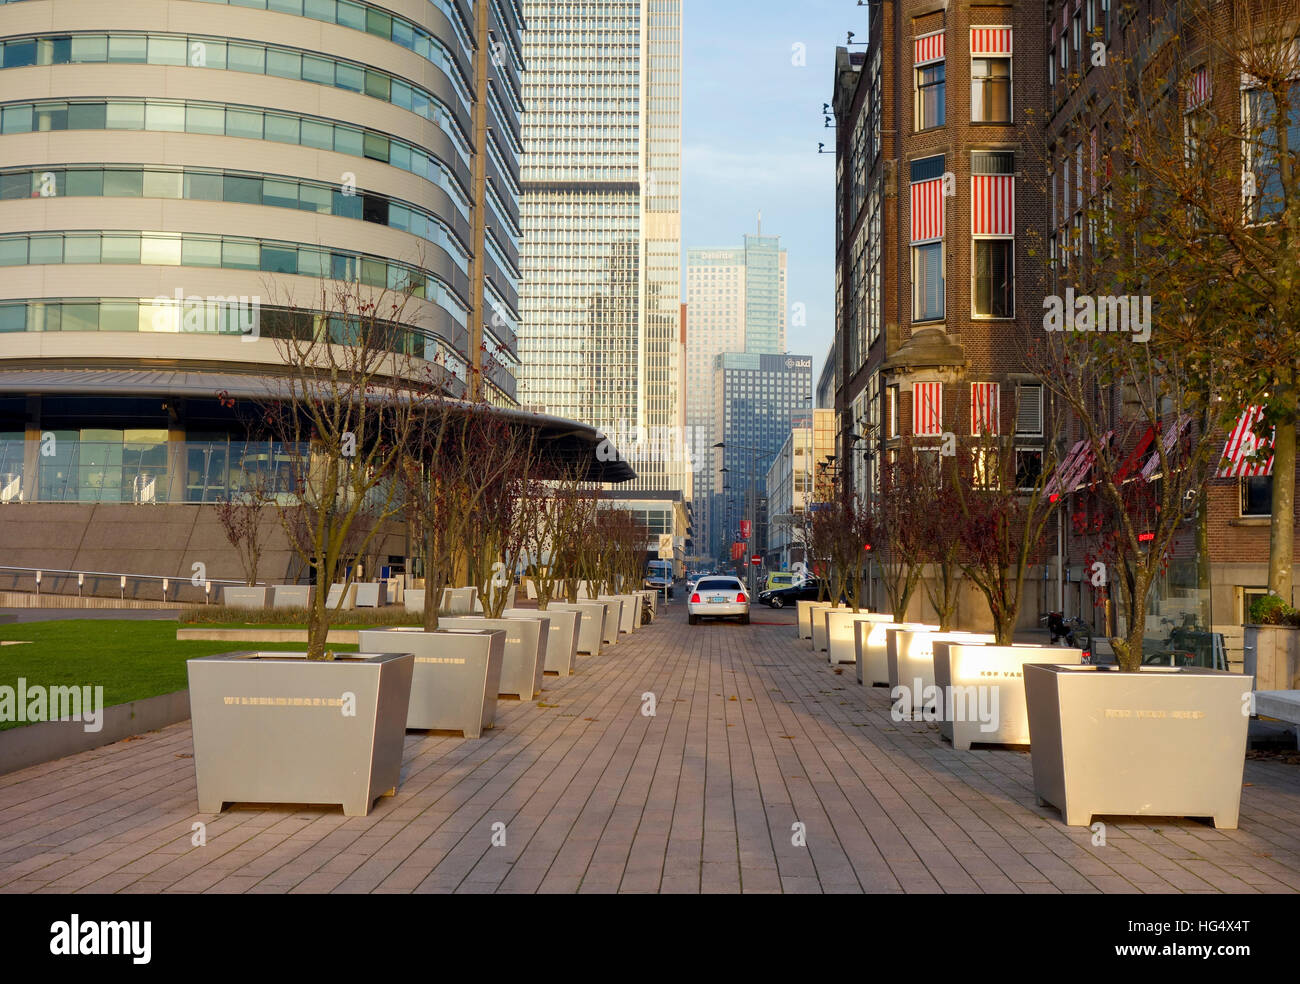 Wilhelminapier, Rotterdam, South Holland, Holland, Netherlands, Europe - Stock Image